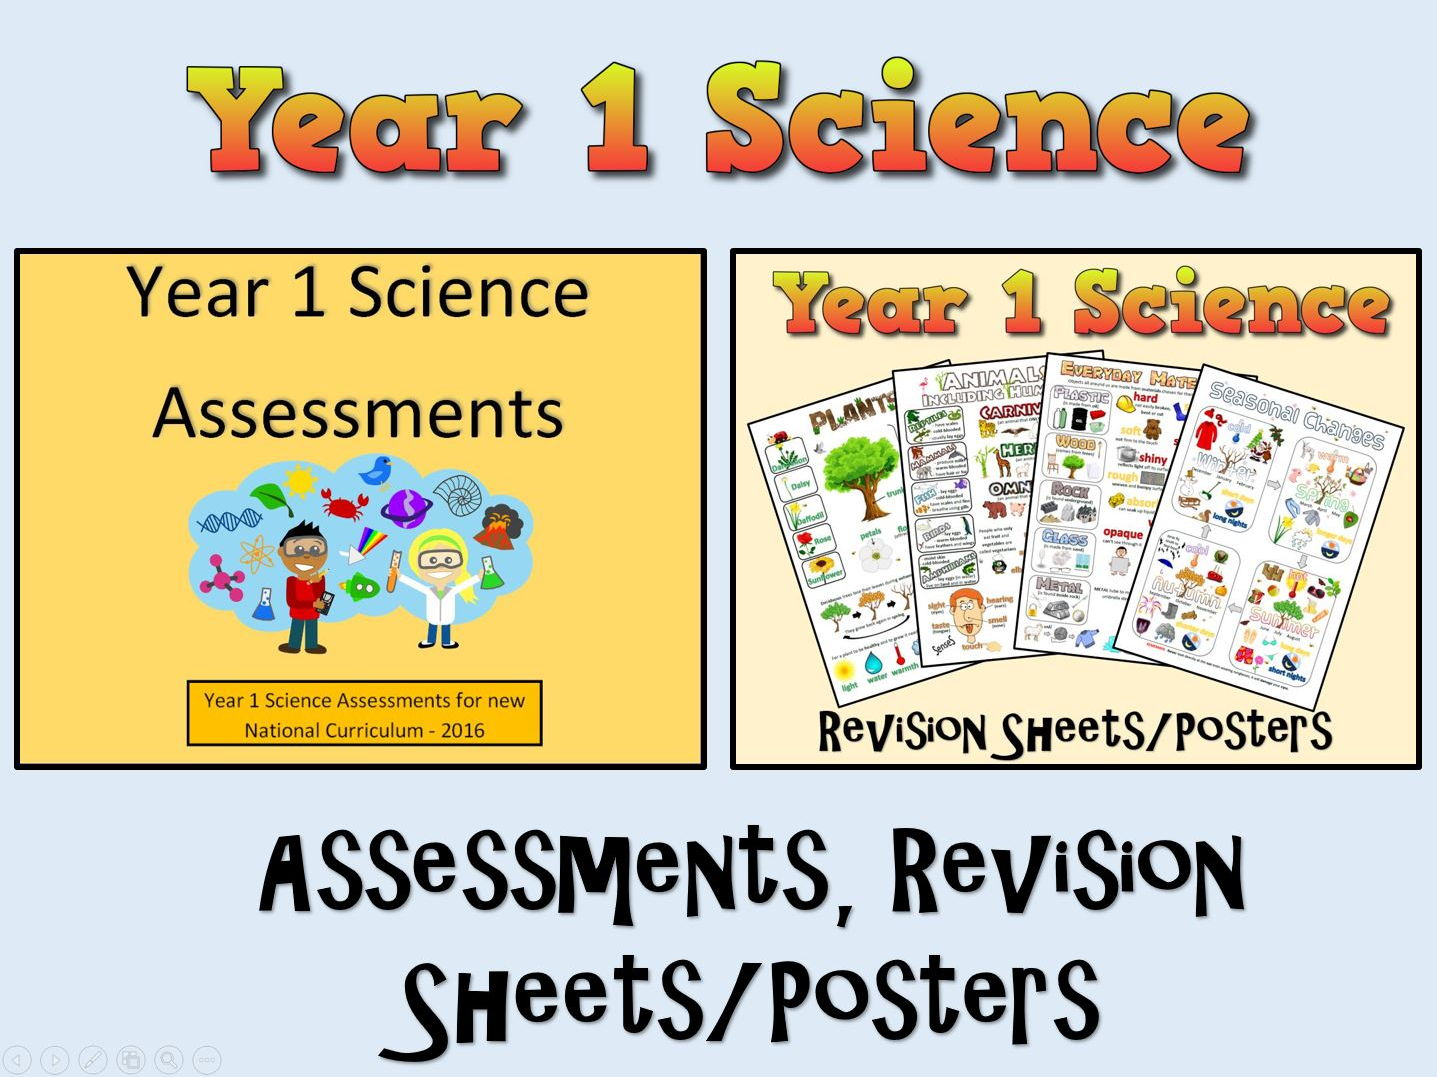 Year 1 Science Assessments + Posters/Revision Sheets